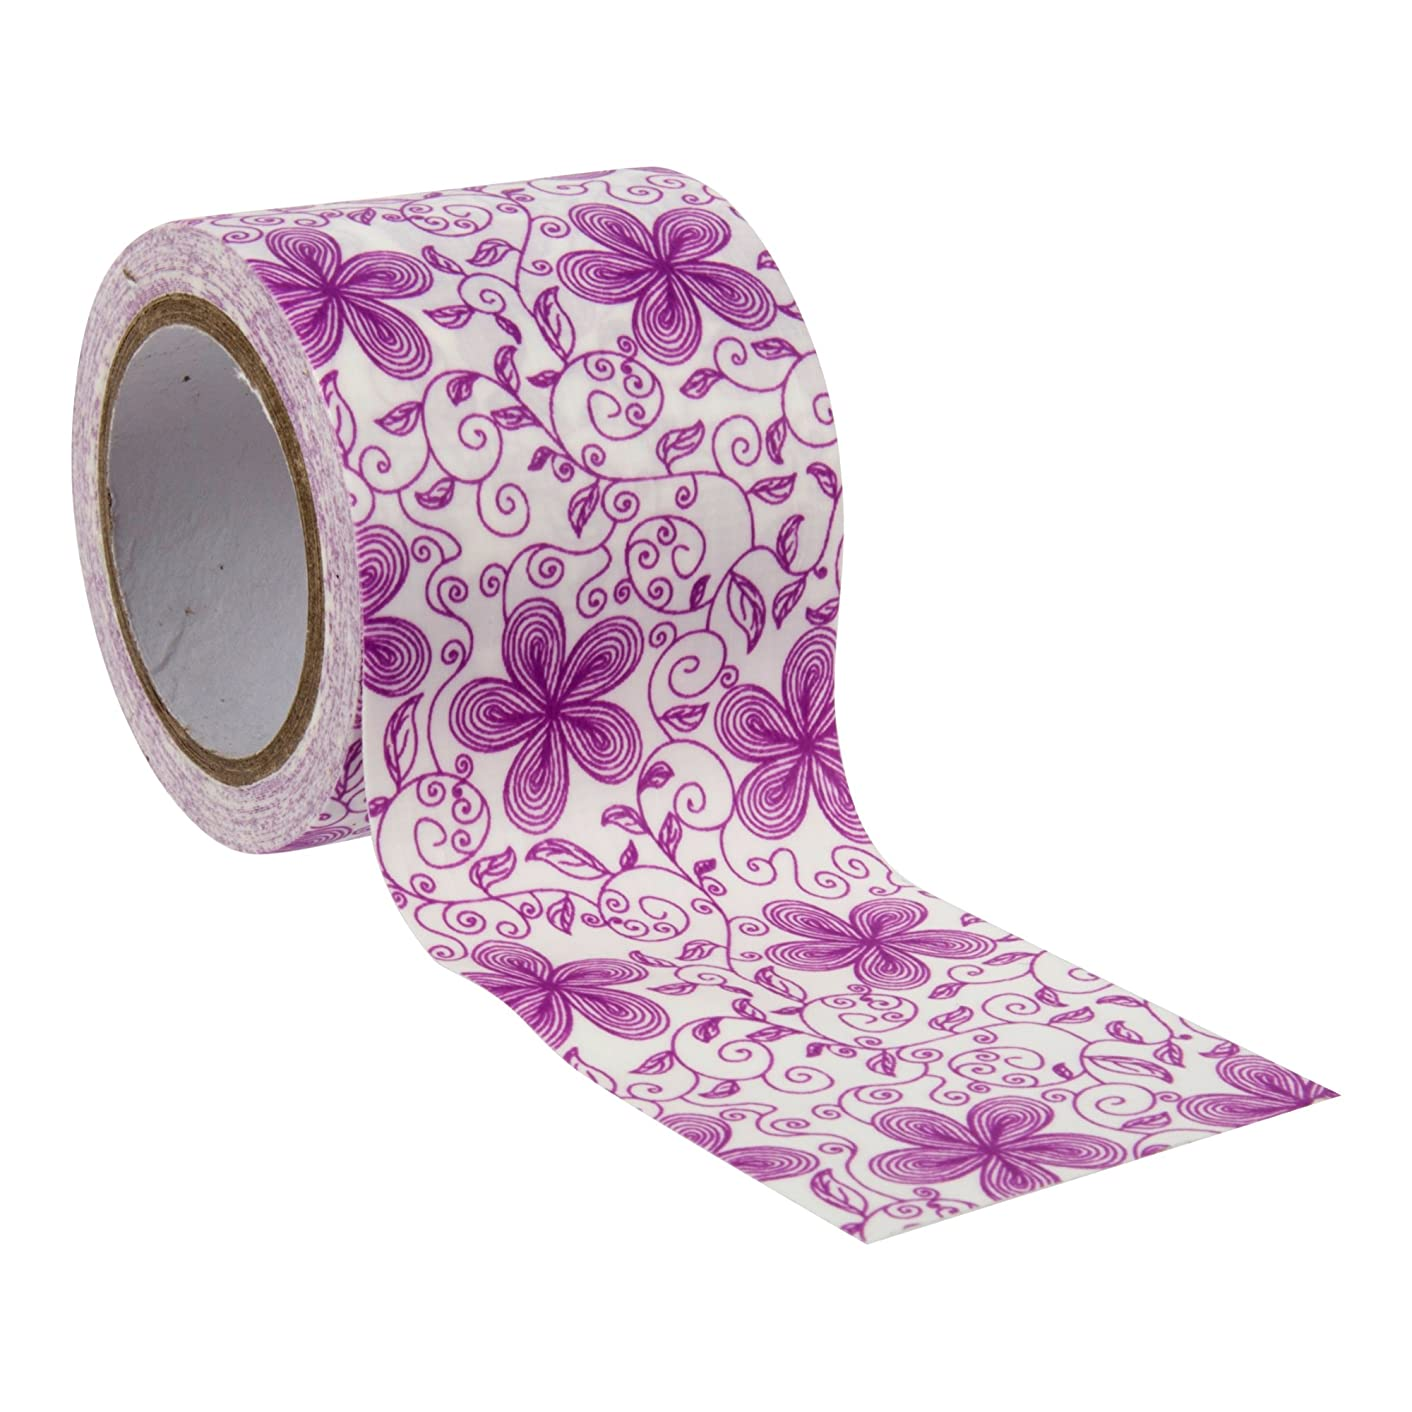 CTG, Crafters Duct Tape, 1.9 Inches, Pink Floral, 6 Pieces